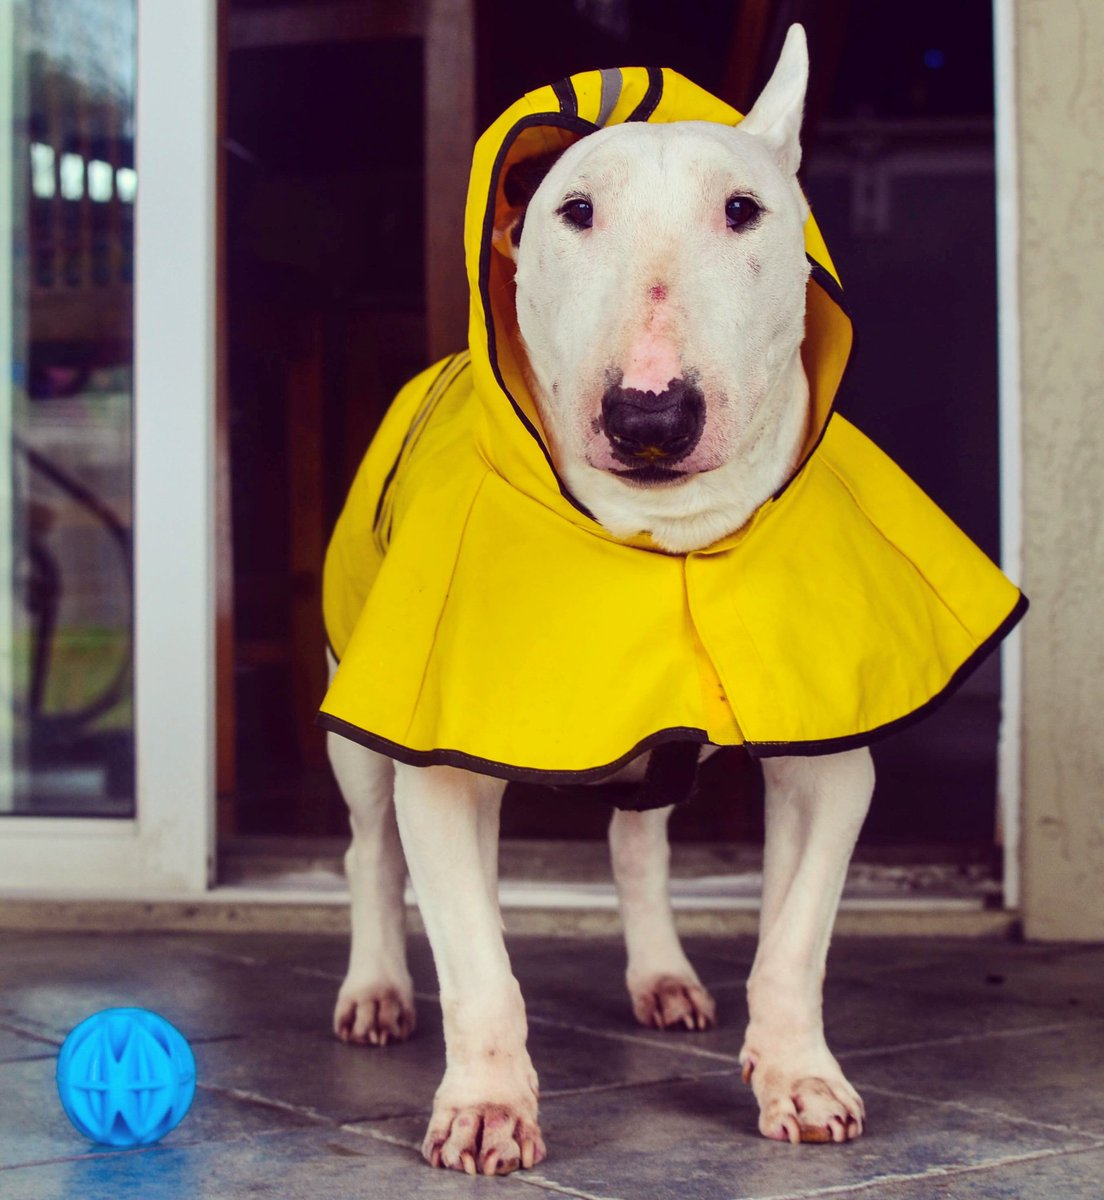 The brief moment when you step outside and think about going for a pee while it's raining and then... nope, I'll go back inside   . . . #dogsoftwitter #dogsofinstagram #bullterrier #bullies #bullterriers #puppers #puppy #dogs #dog #dogtravel #traveldog #dogfriendly #dogmodel<br>http://pic.twitter.com/OuYziAPXV1